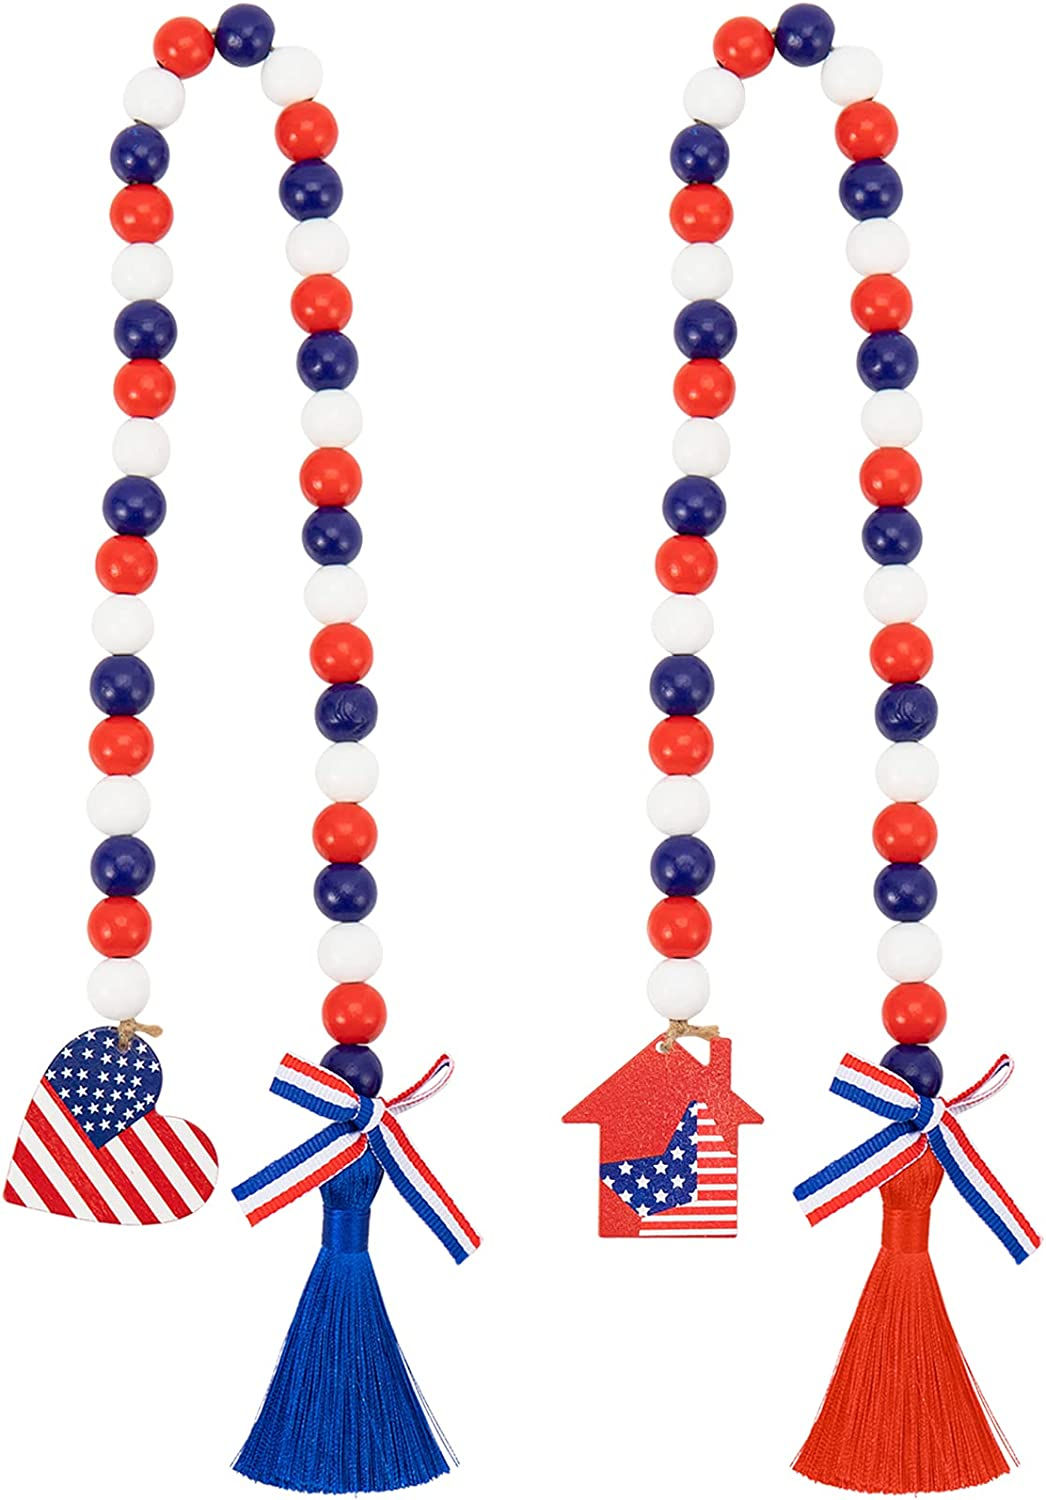 2pcs Patriotic Wood Bead Garland with American Flag Tag- Independence Day Wooden Beads Garland with Tassels Rustic Prayer Beads with USA Flag for 4th of July Memorial Day Home Farmhouse Decor